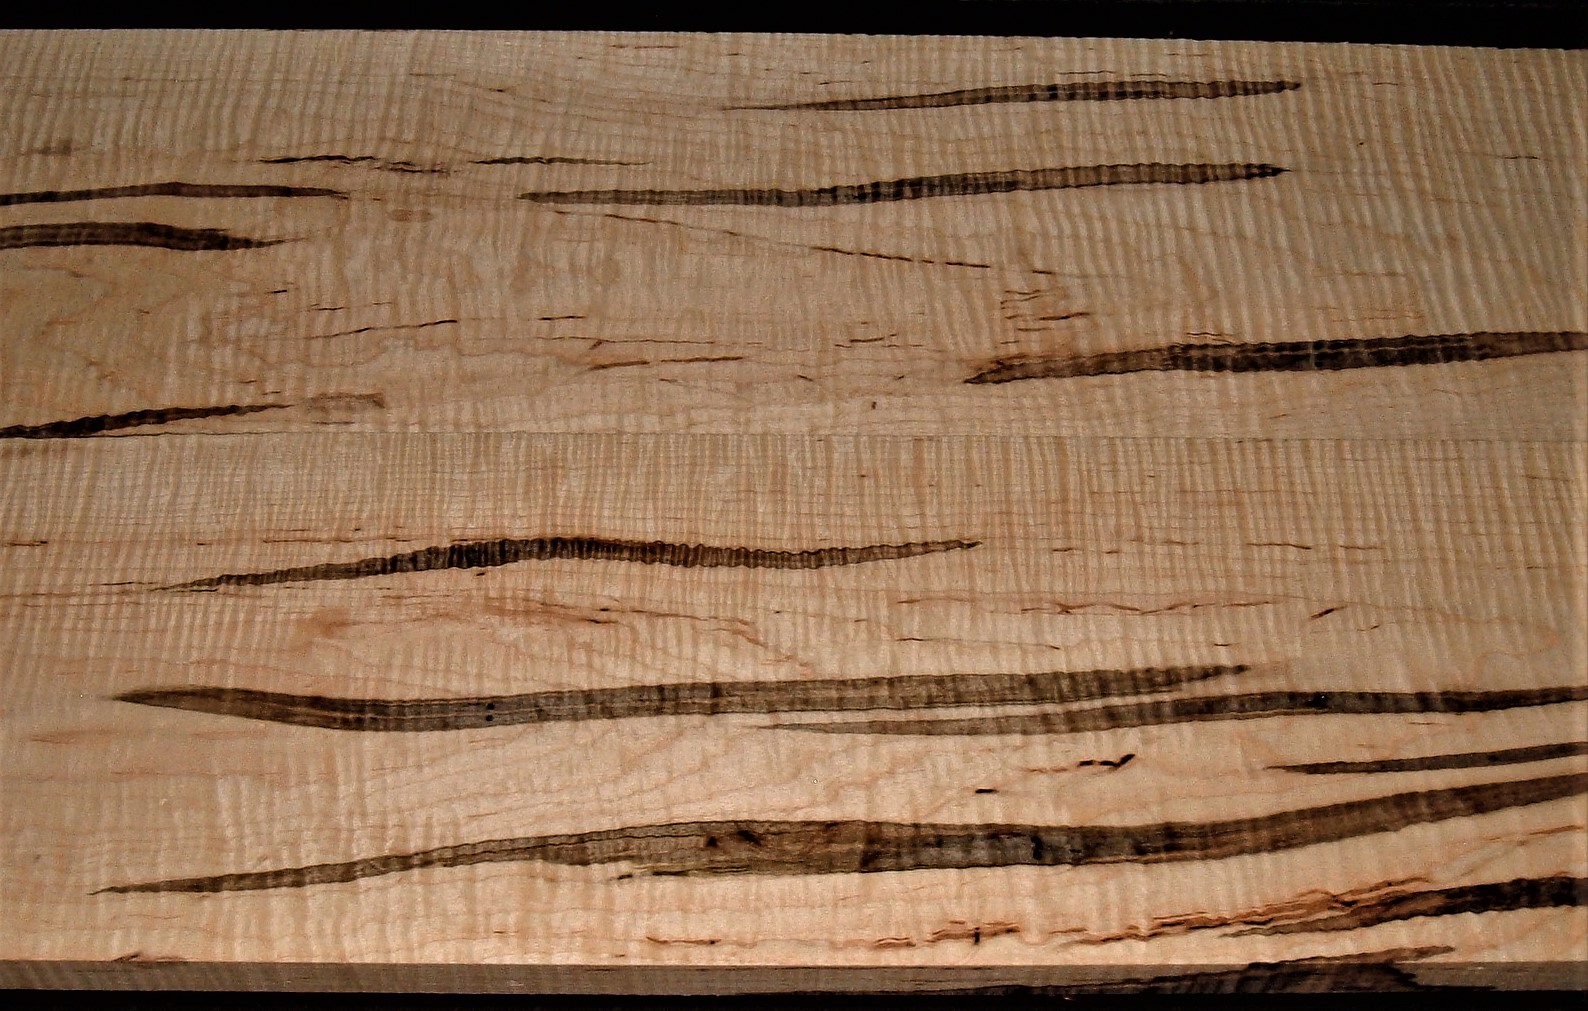 AM2007-130JJ, 2 Bd Set, 1x5-7/8x32, 1x6x32, Curly Ambrosia Maple